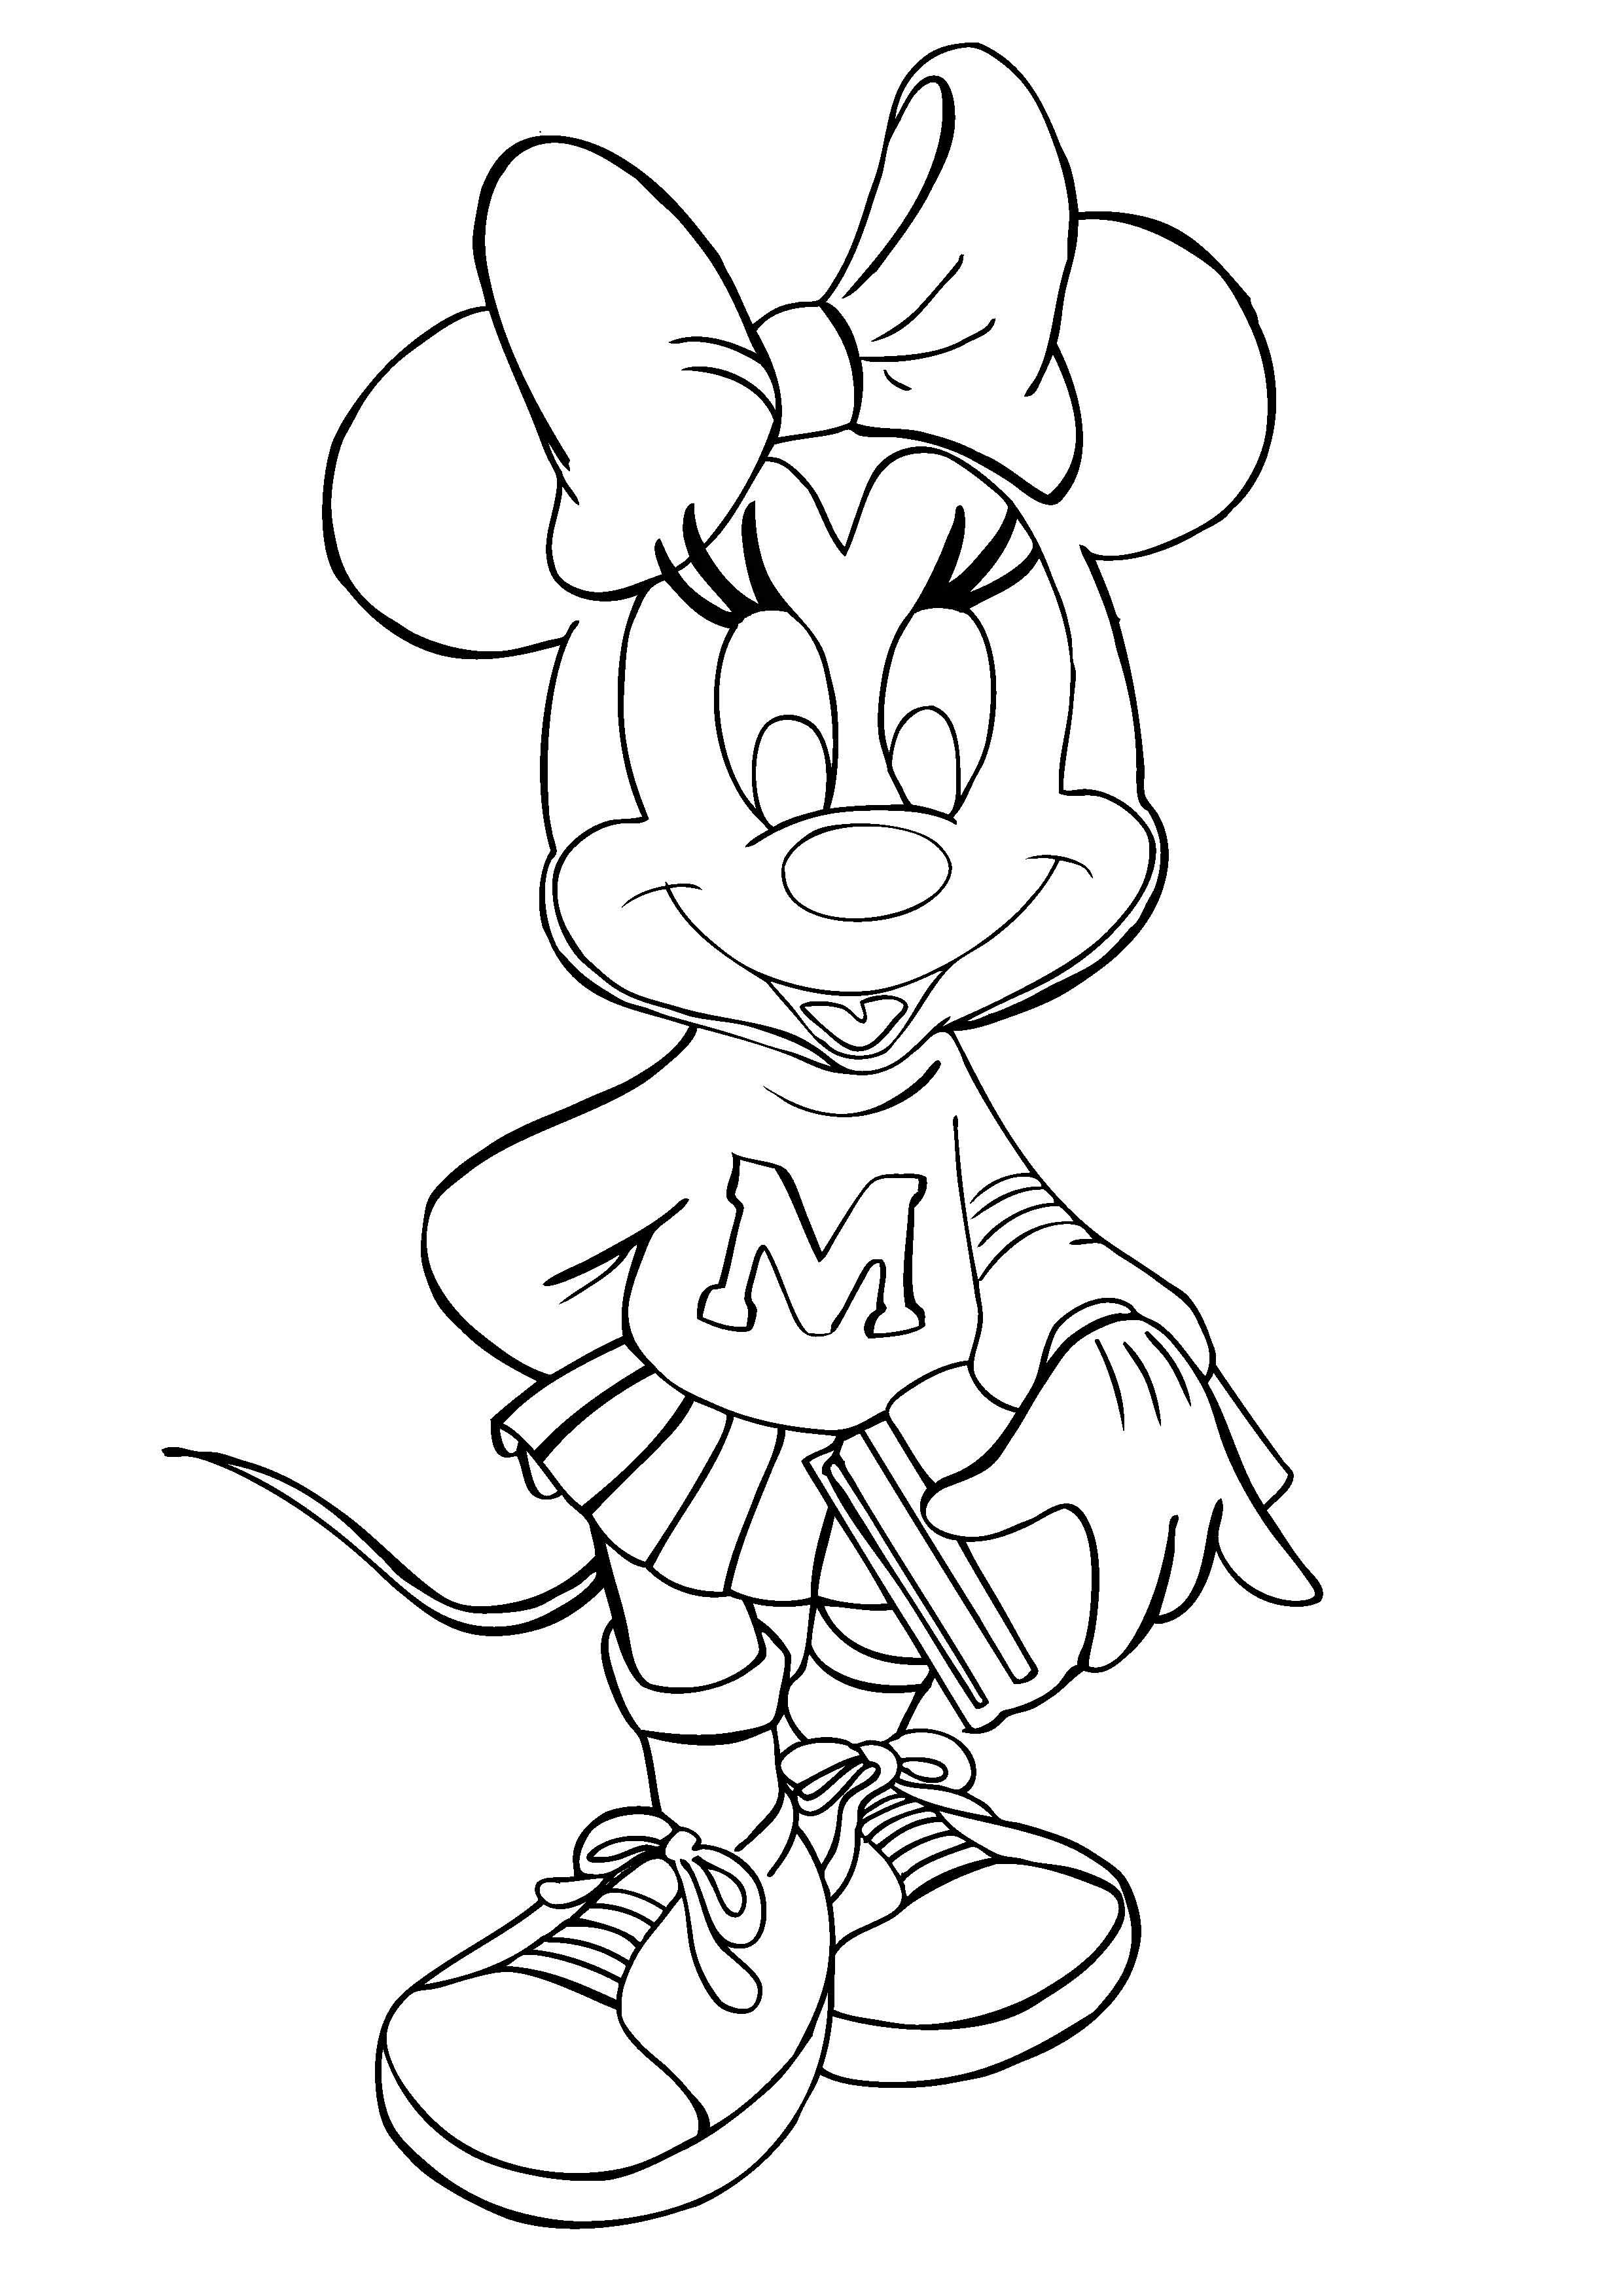 minnie printable coloring pages free printable minnie mouse coloring pages for kids pages printable coloring minnie